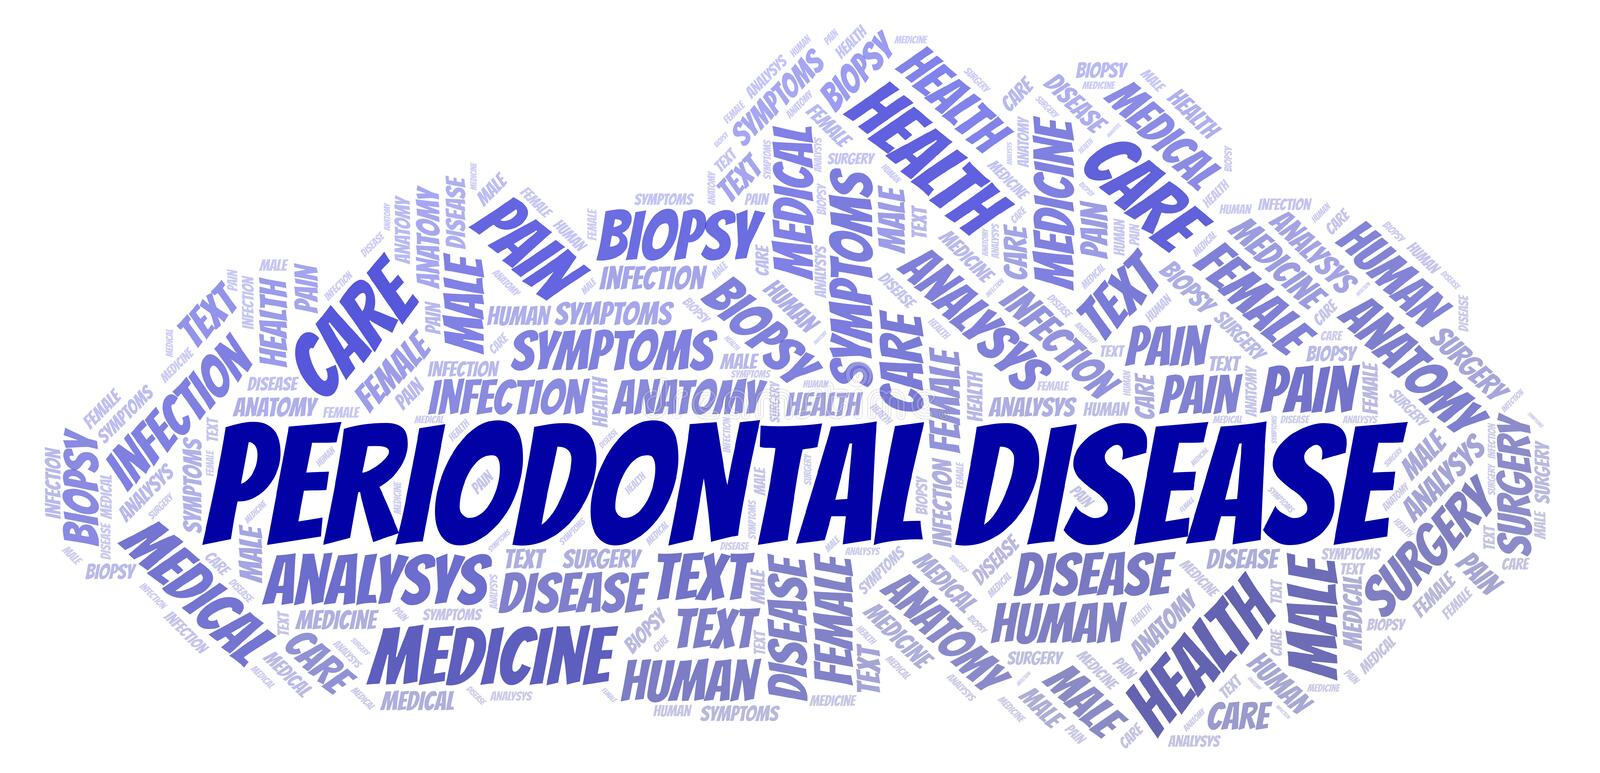 Periodontal Disease word cloud stock illustration